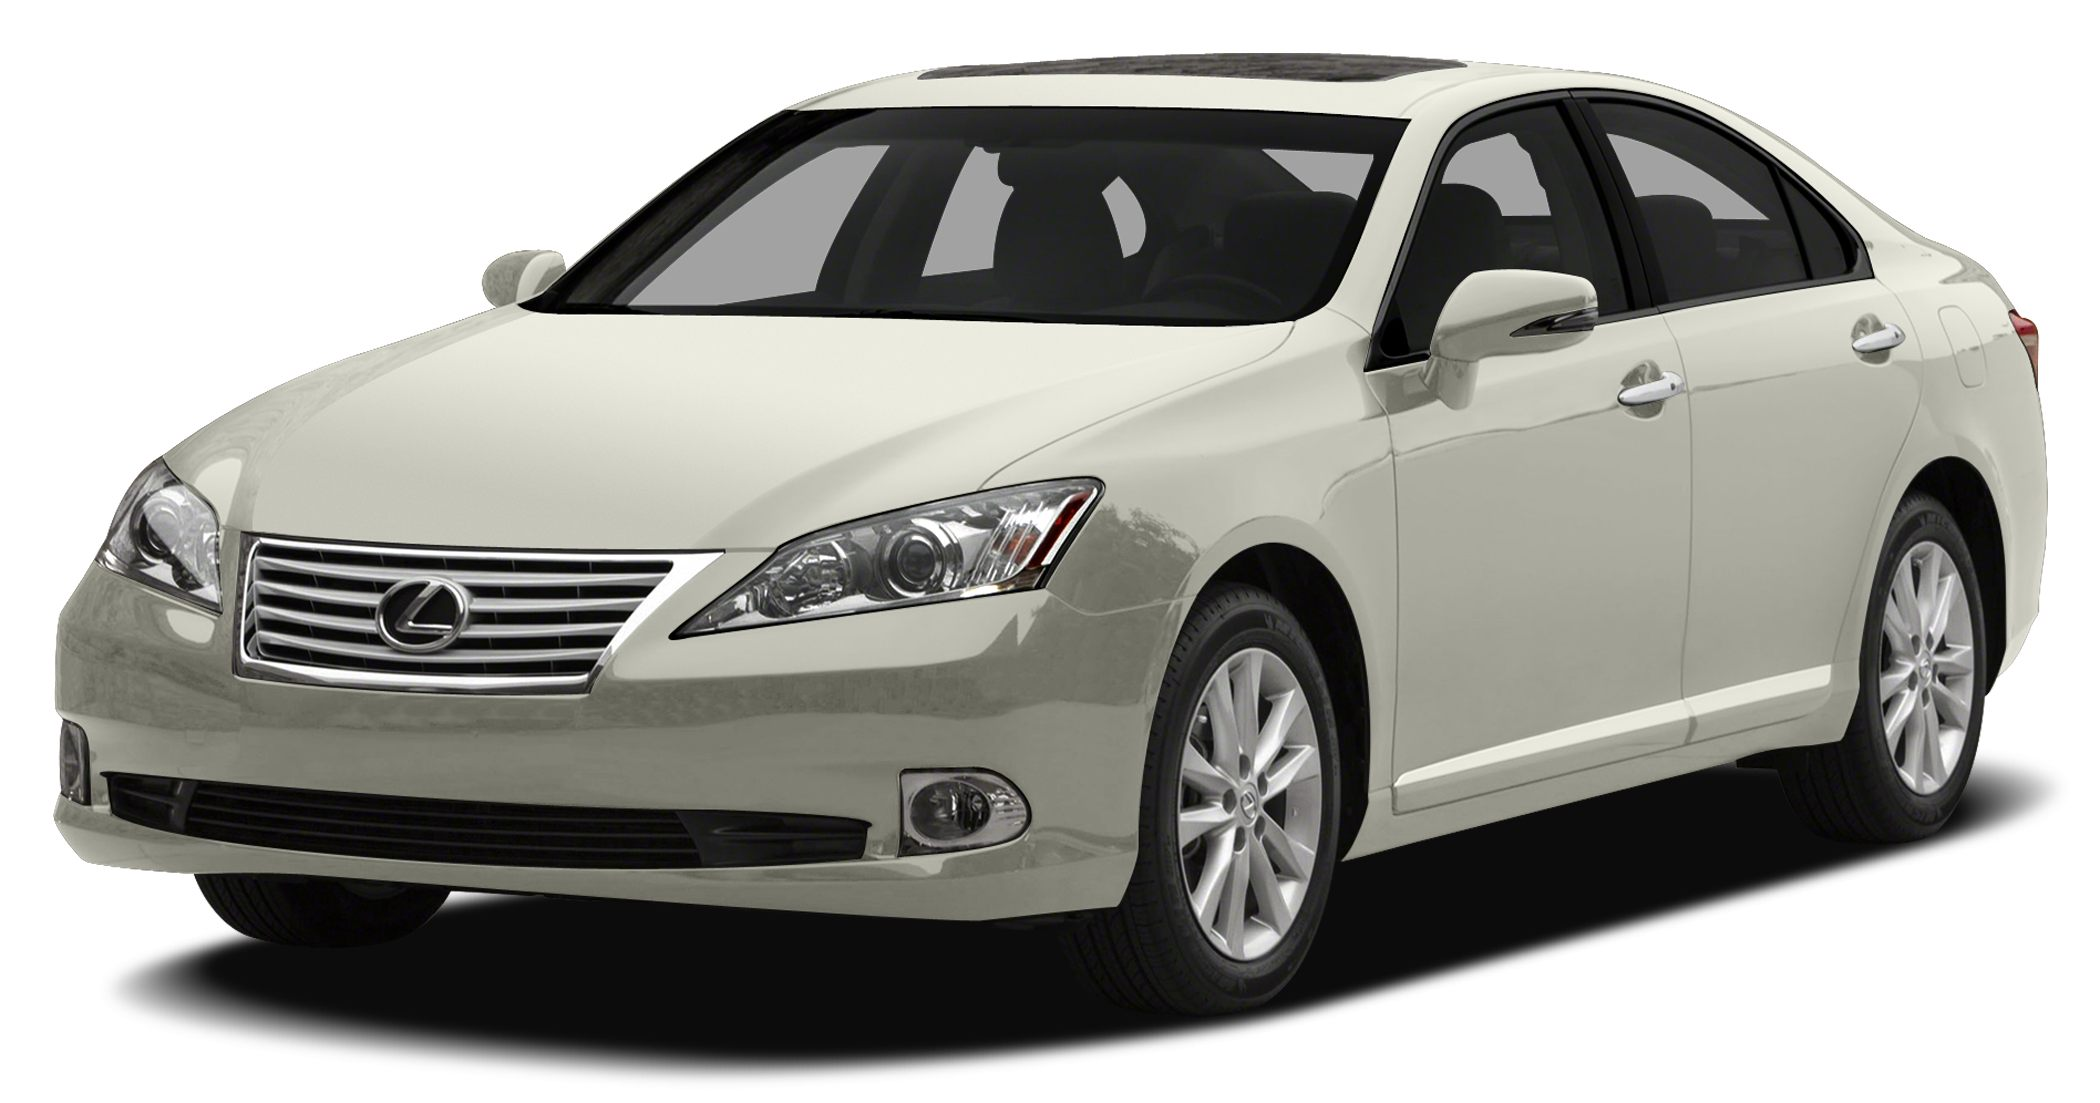 2011 Lexus ES 350 Base NEW LOW PRICE OF 16995 PLUS 4 NEW TIRES ALL NEW BRAKES AND ROTORS FULL